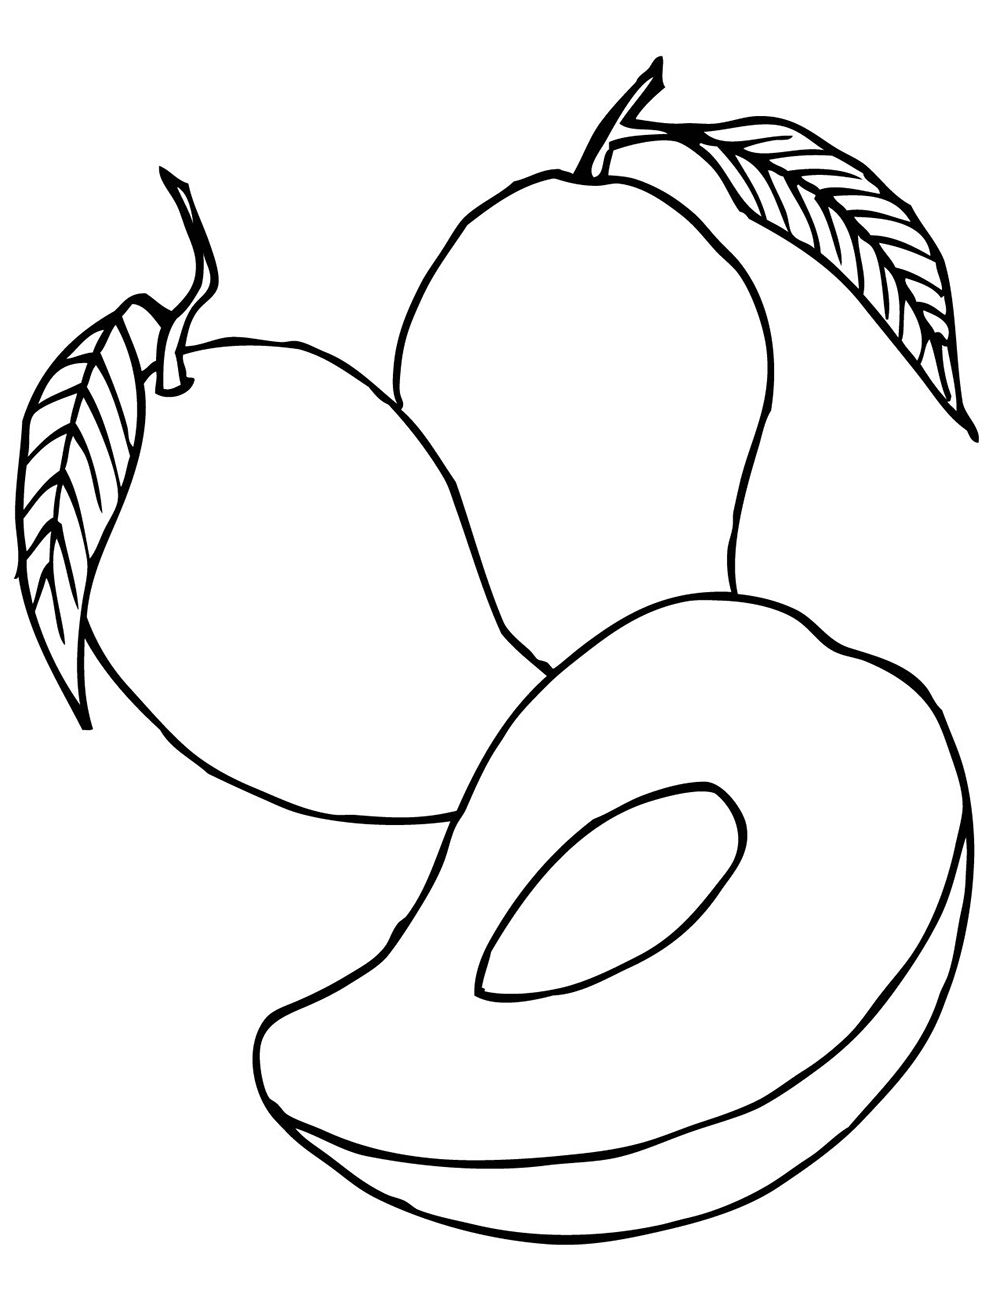 coloring mango template mango coloring pages sketch coloring page mango coloring template